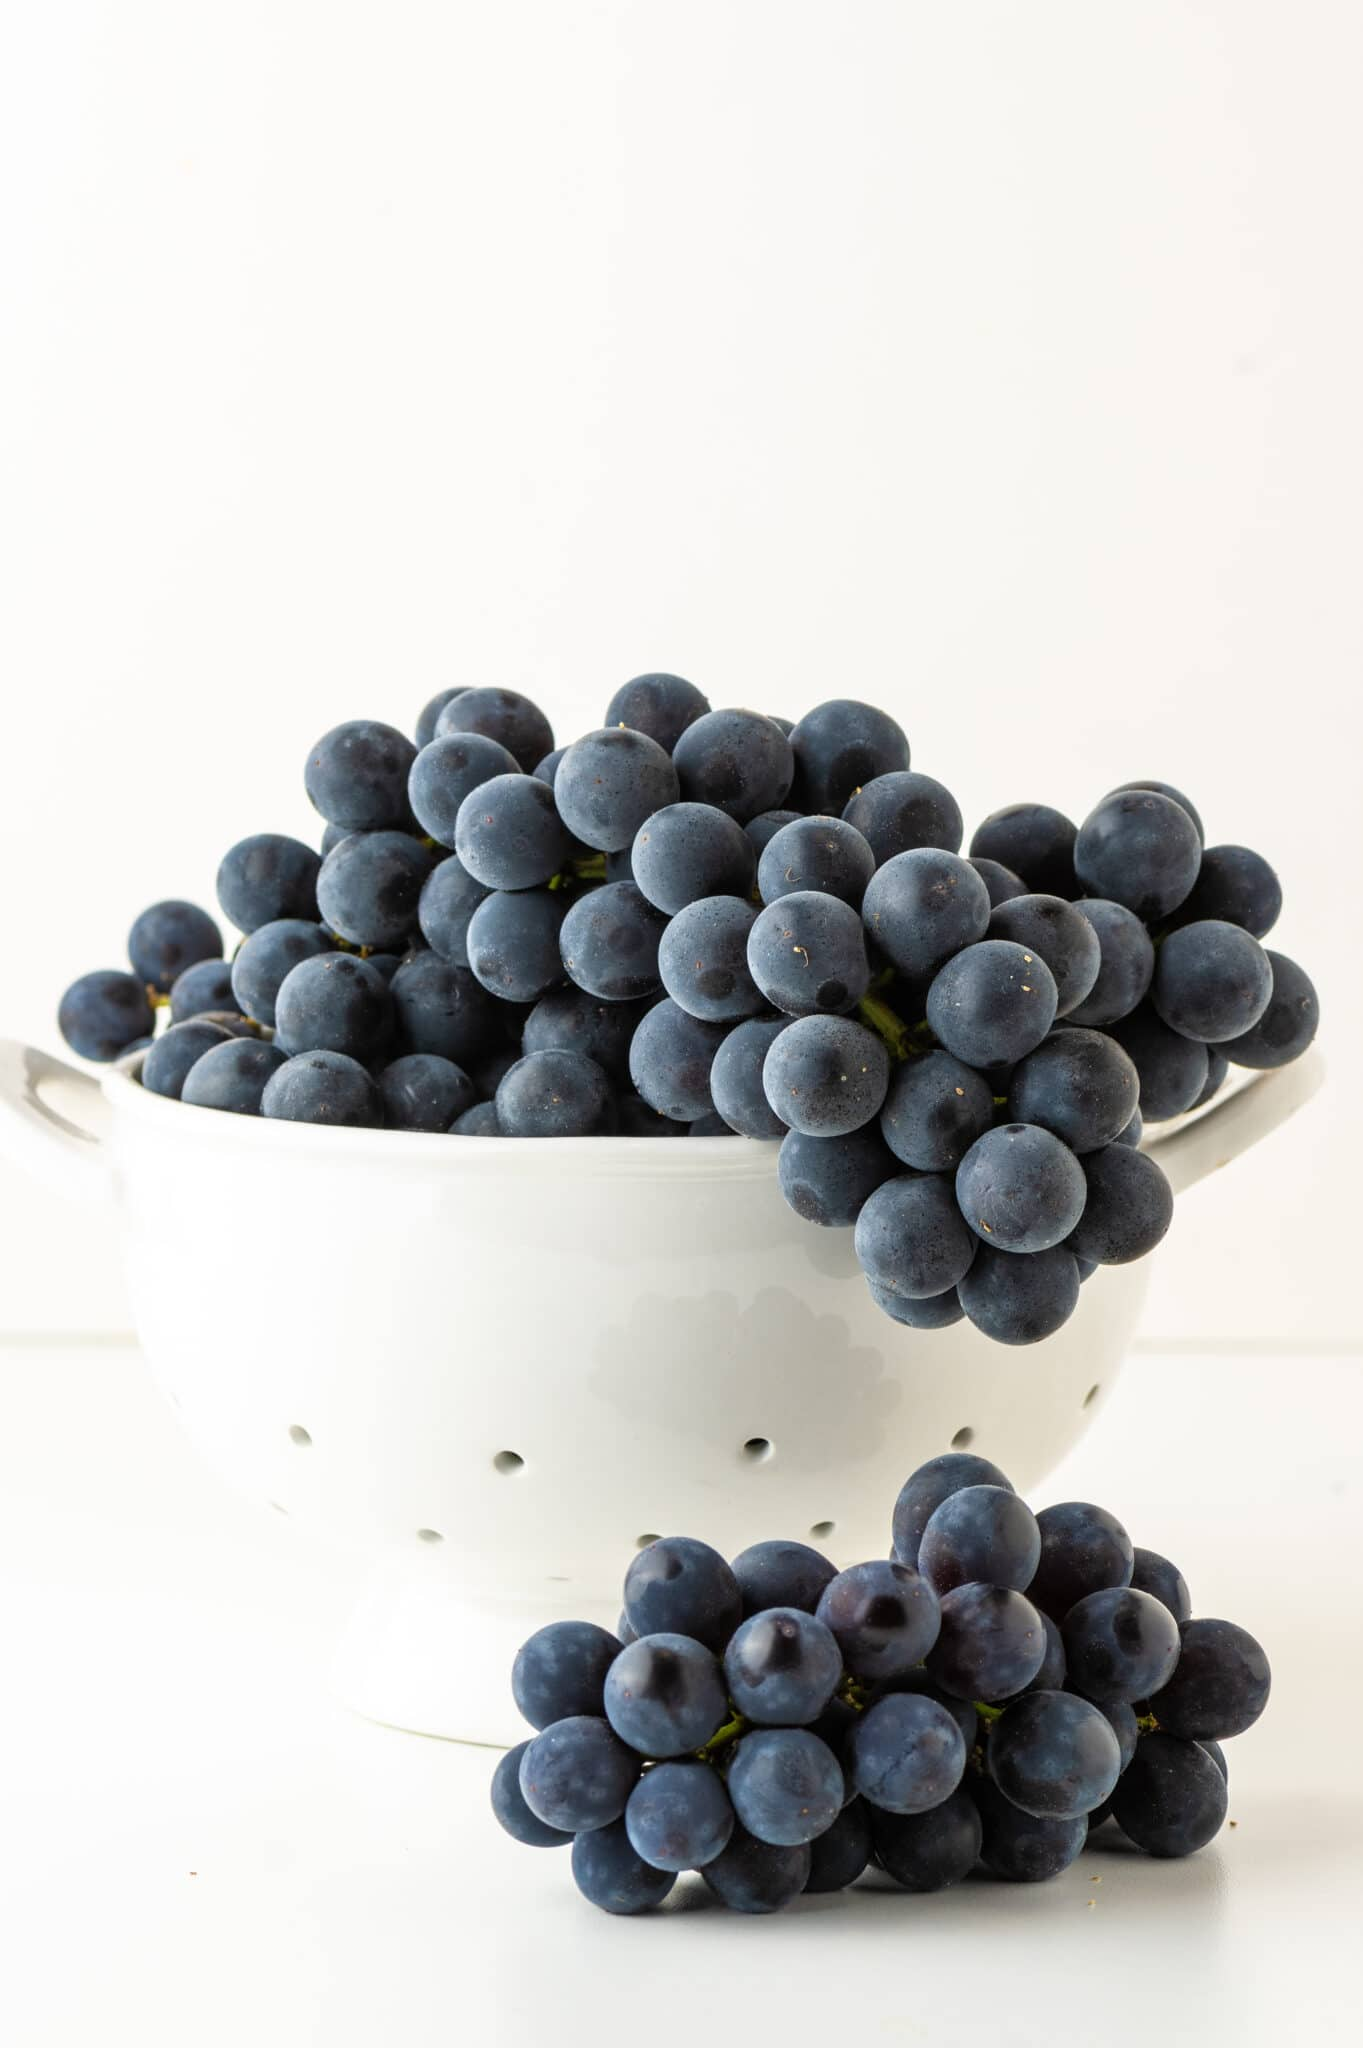 A bowl of purple grapes about to be used to make natural fabric dye.